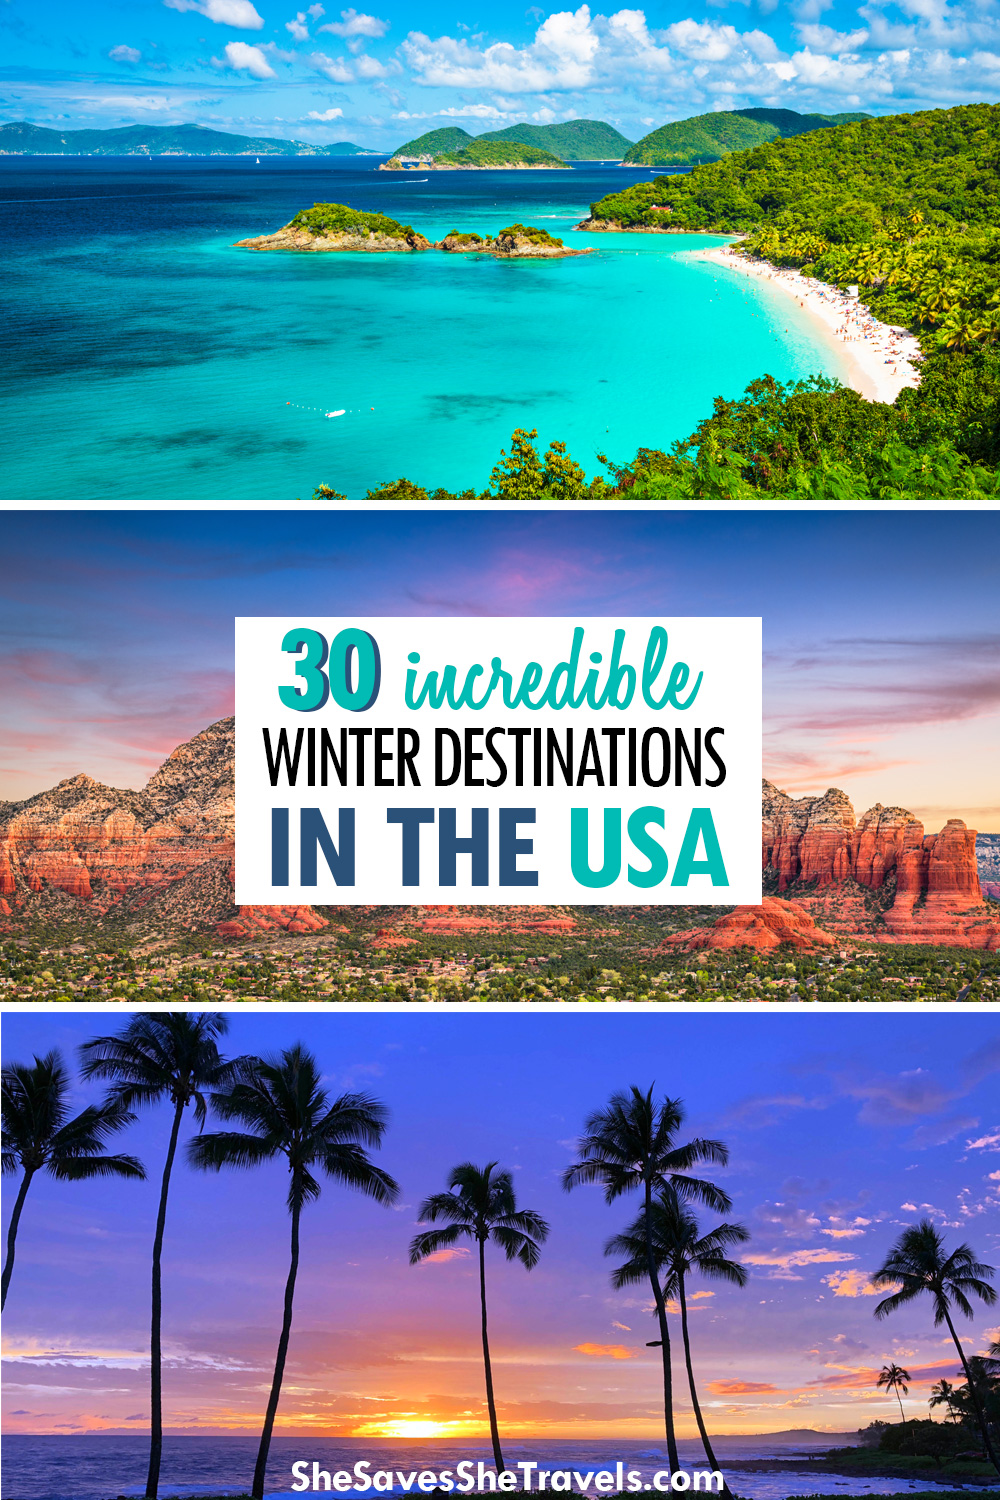 30 incredible winter destinations in the usa